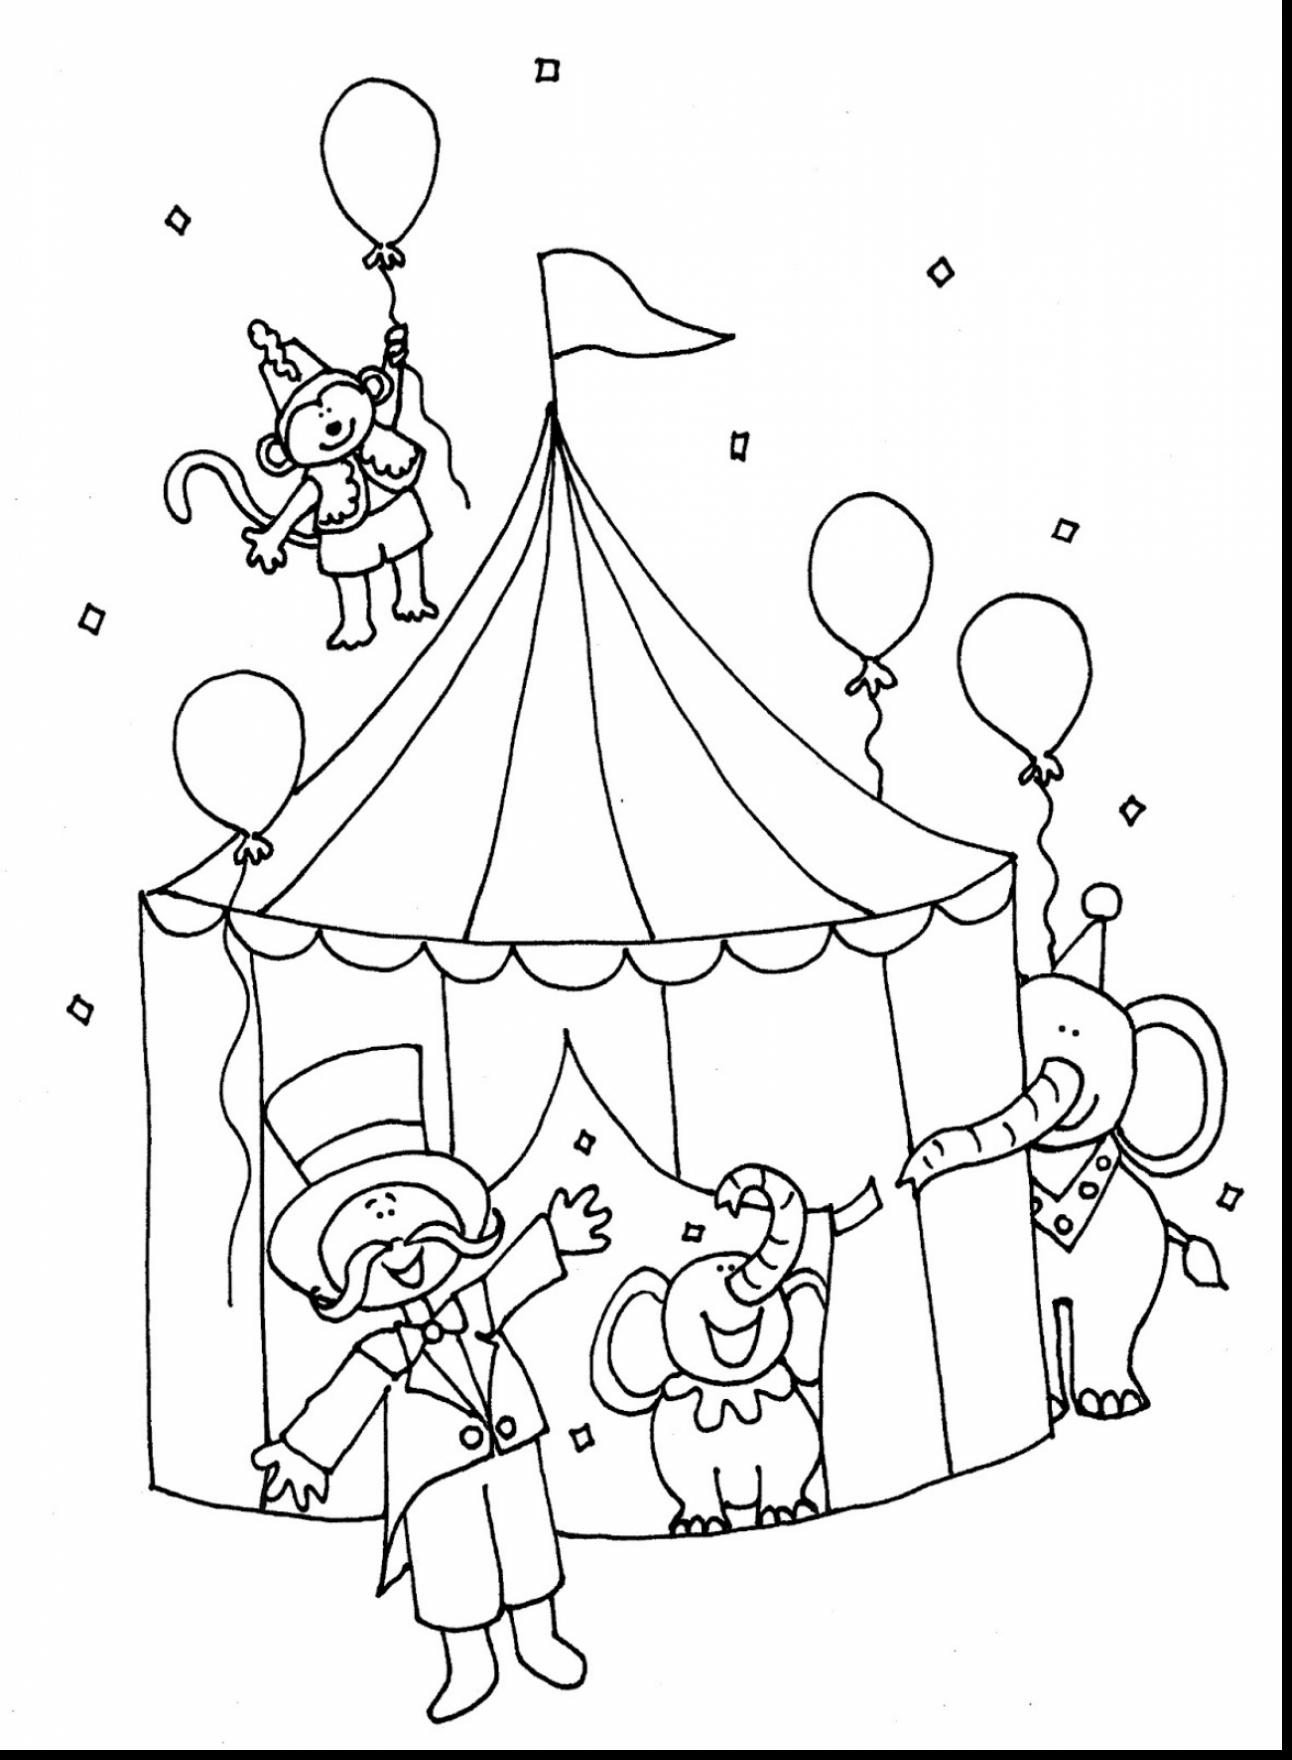 Circus Ringmaster Drawing At Getdrawings Com Free For Personal Use